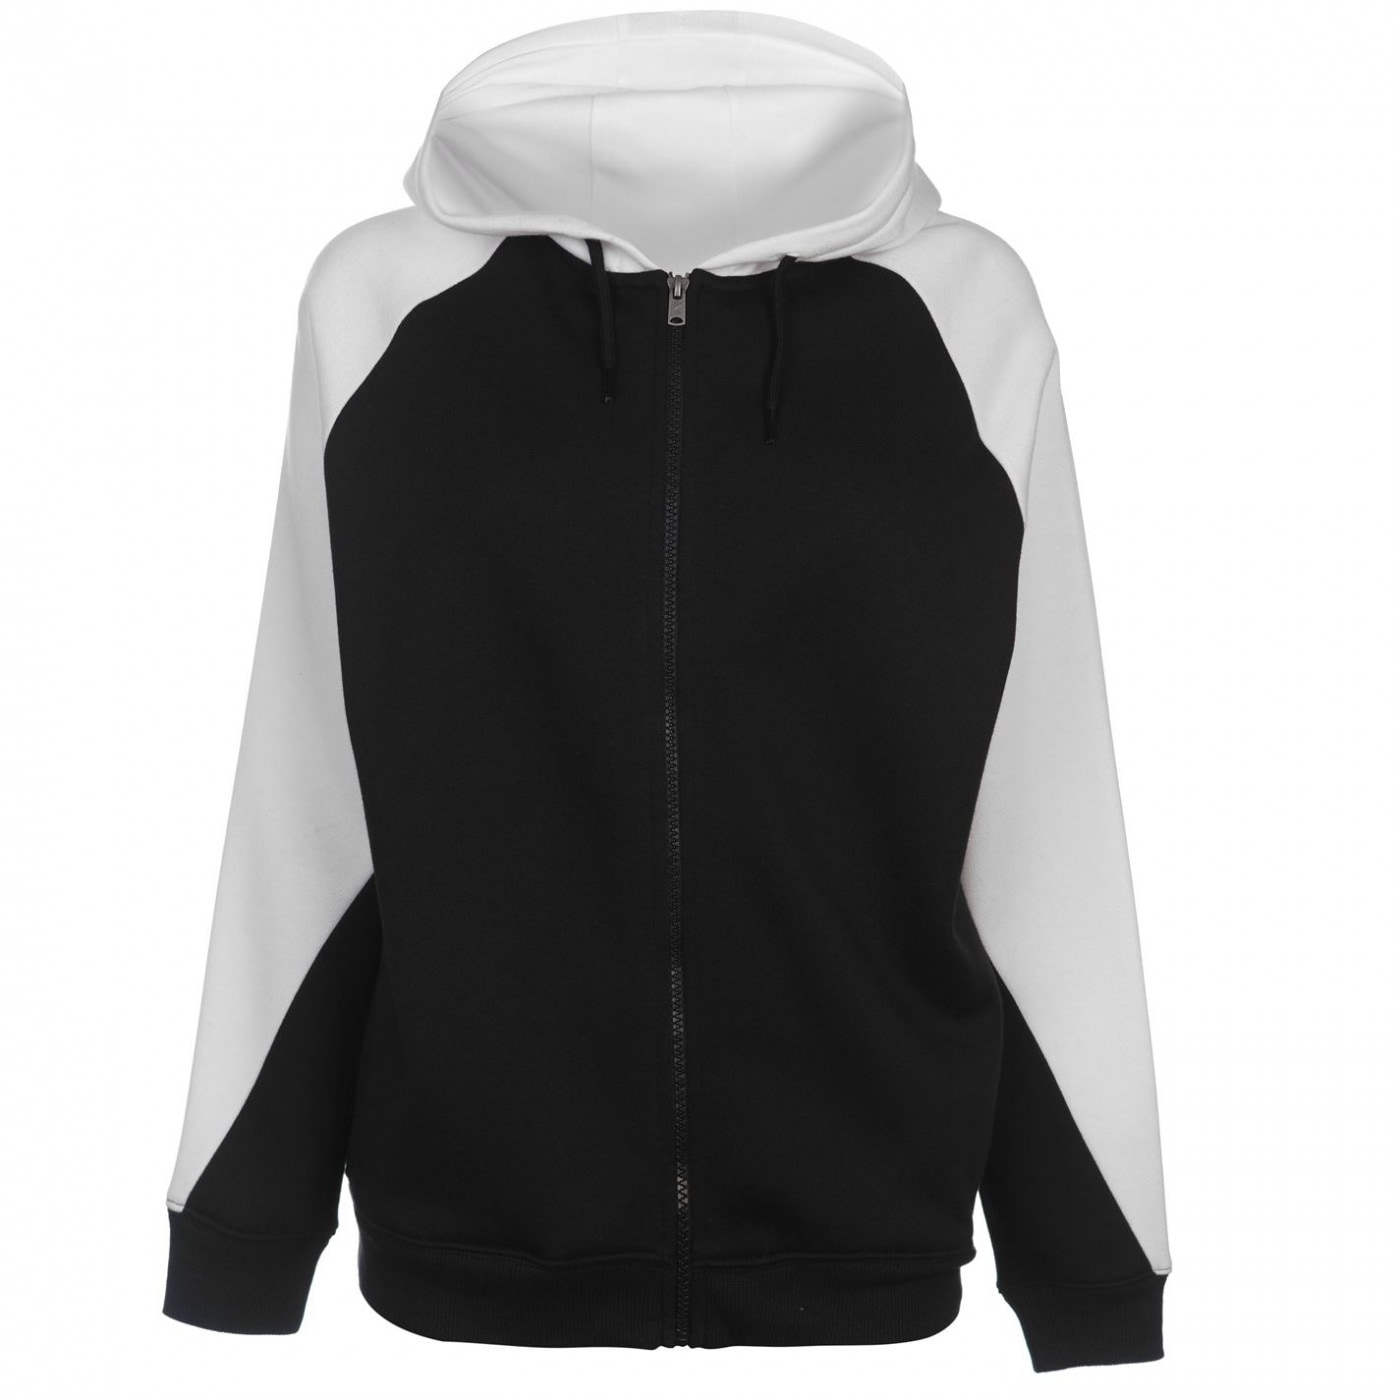 LA Gear Cut and Sew Full Zipped Hoody Ladies